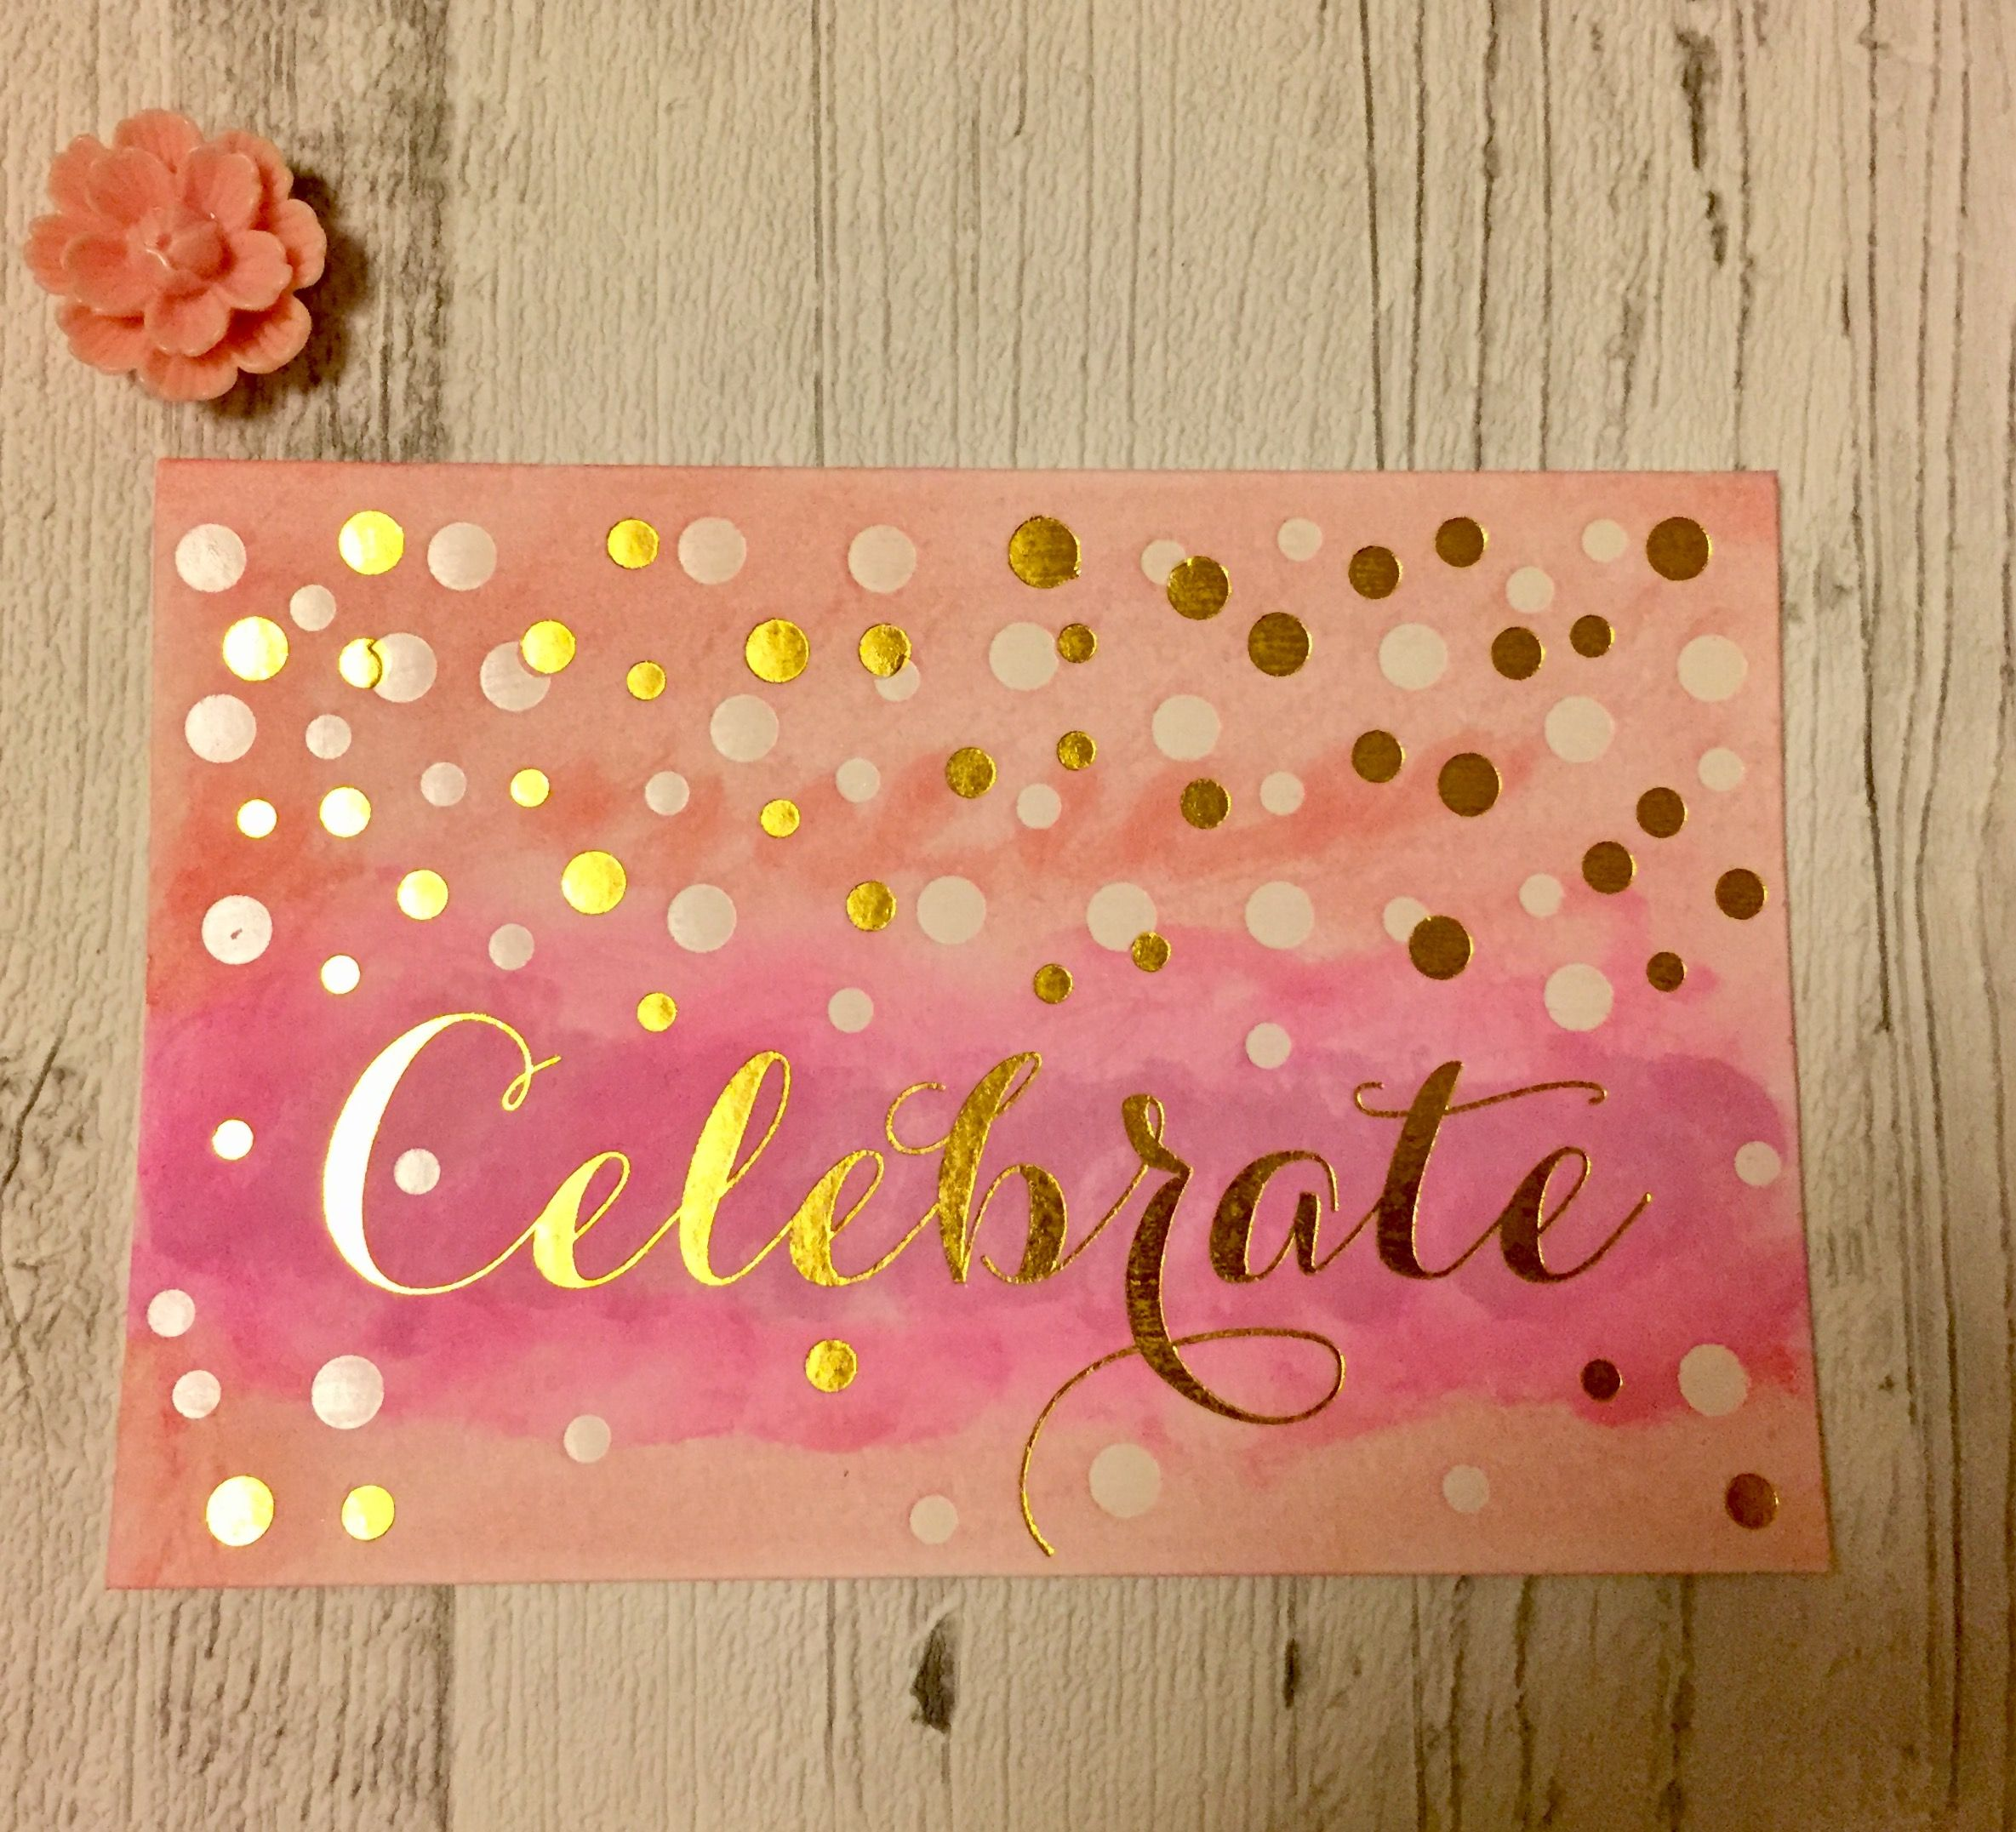 watercolour celebration greetings cards. These would make